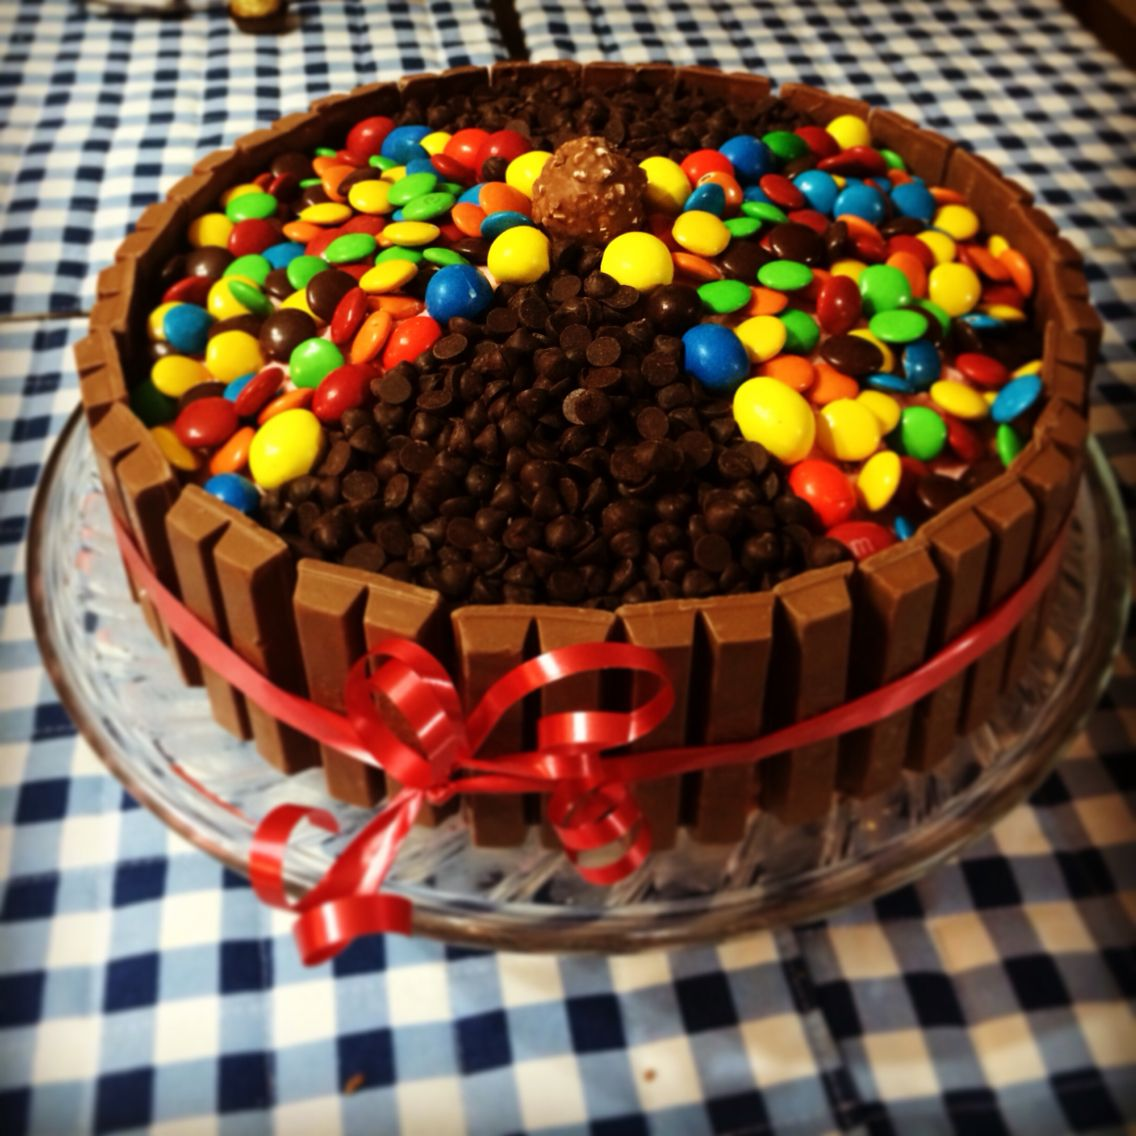 Cake Kit Kat de chocolate